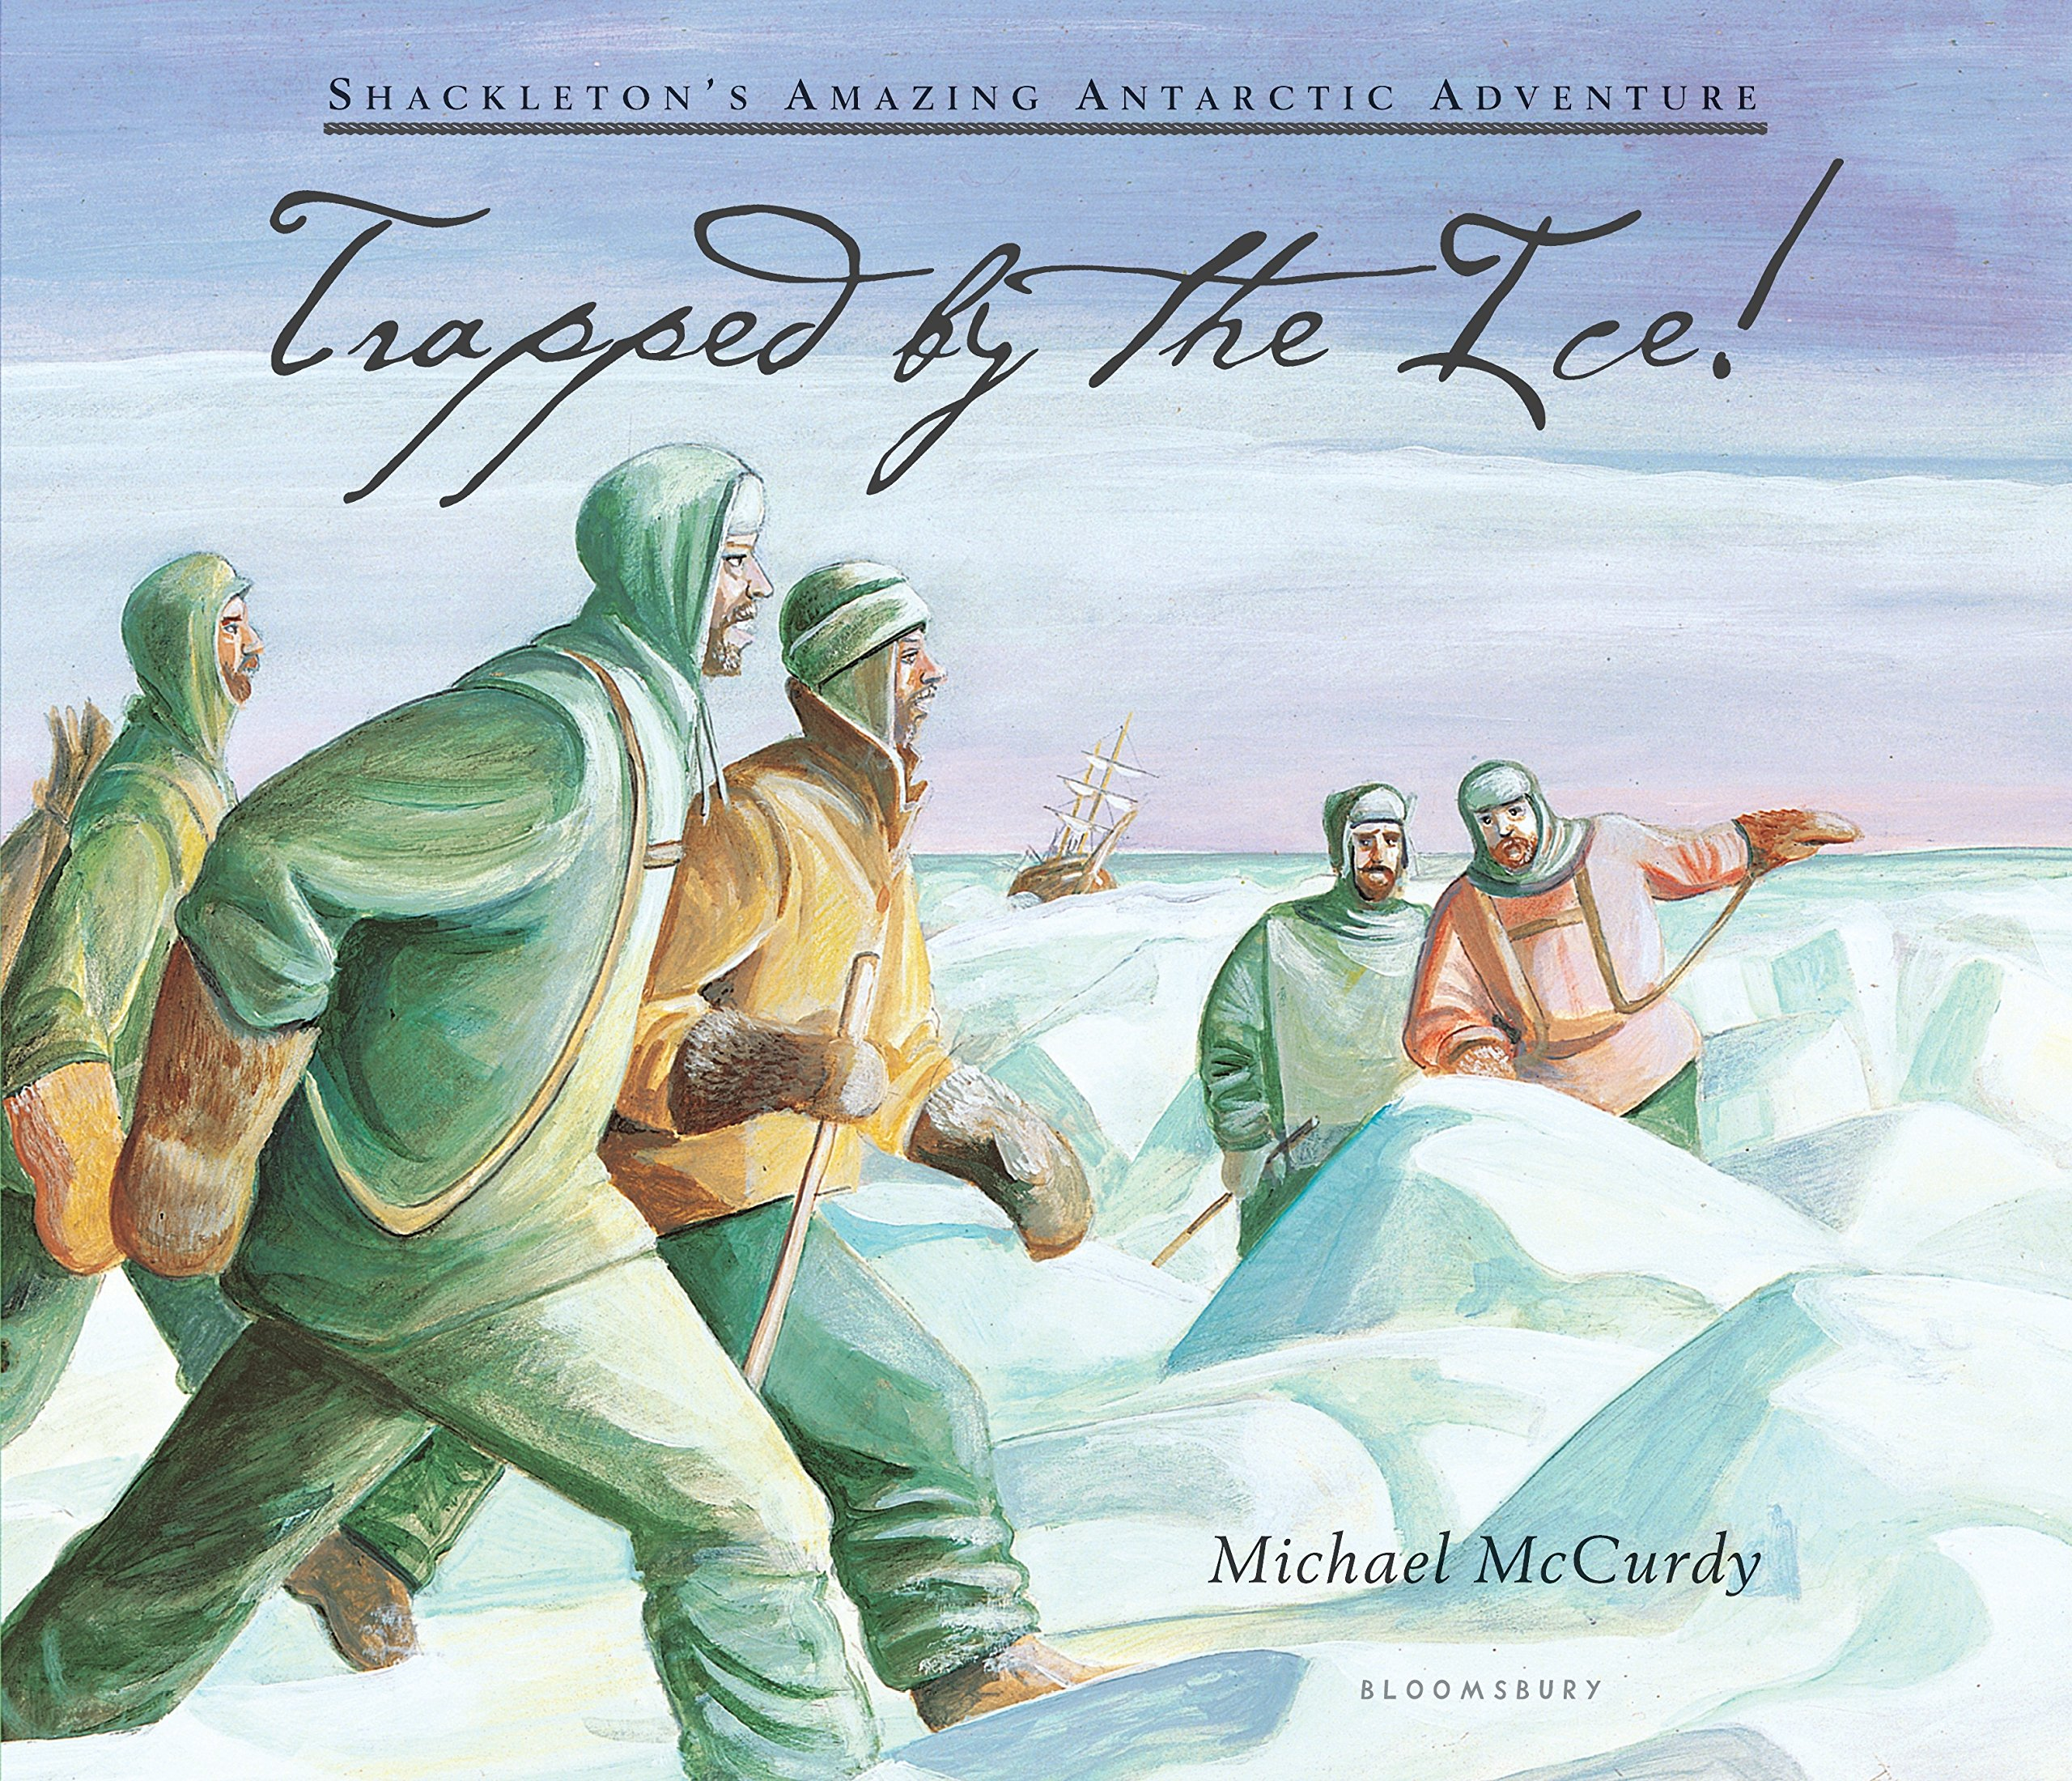 Trapped by the Ice!: Shackleton's Amazing Antarctic Adventure